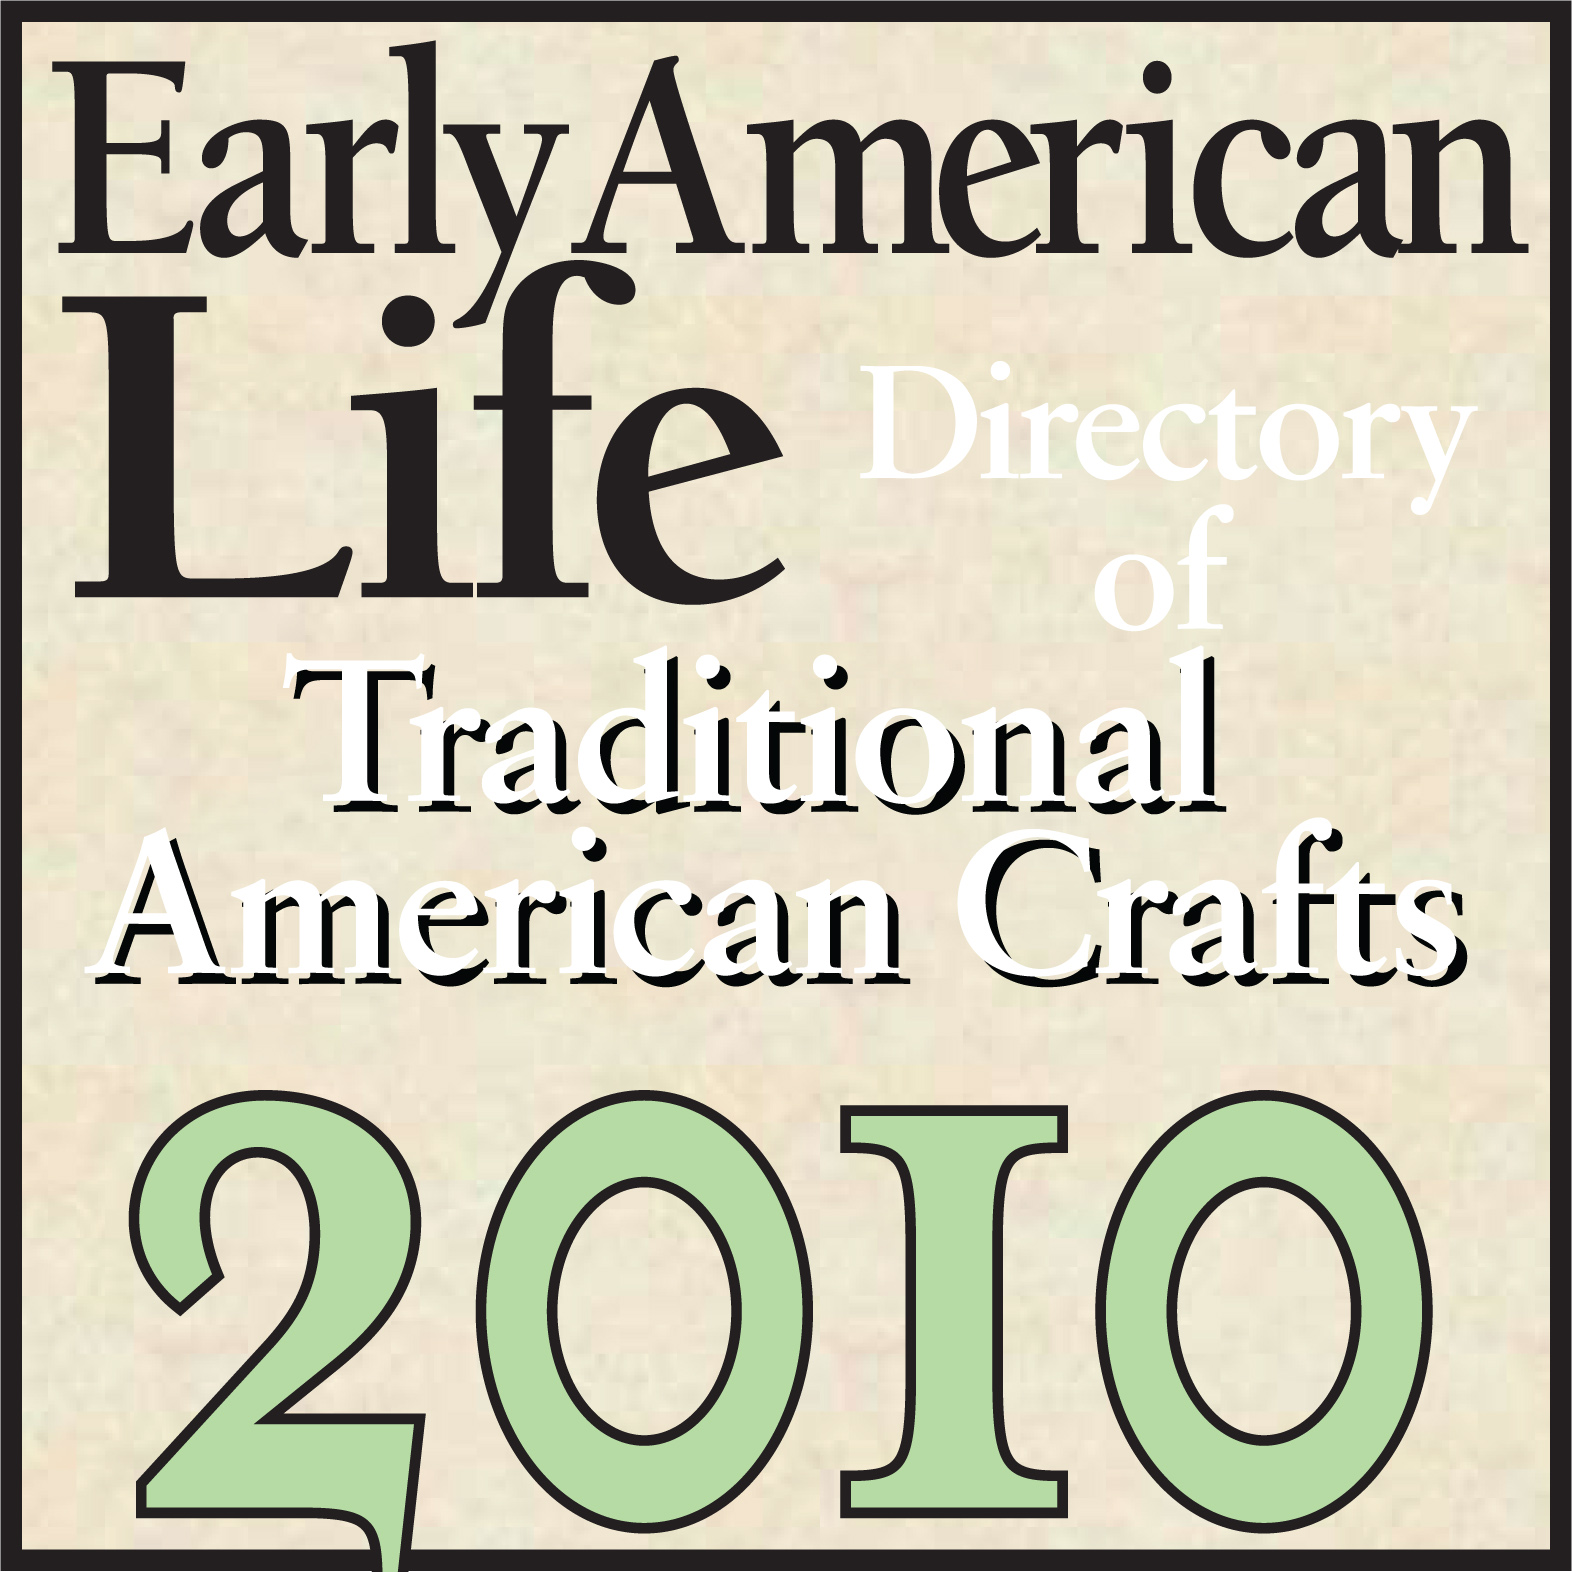 Early American Life Traditional American Crafts logo 2010